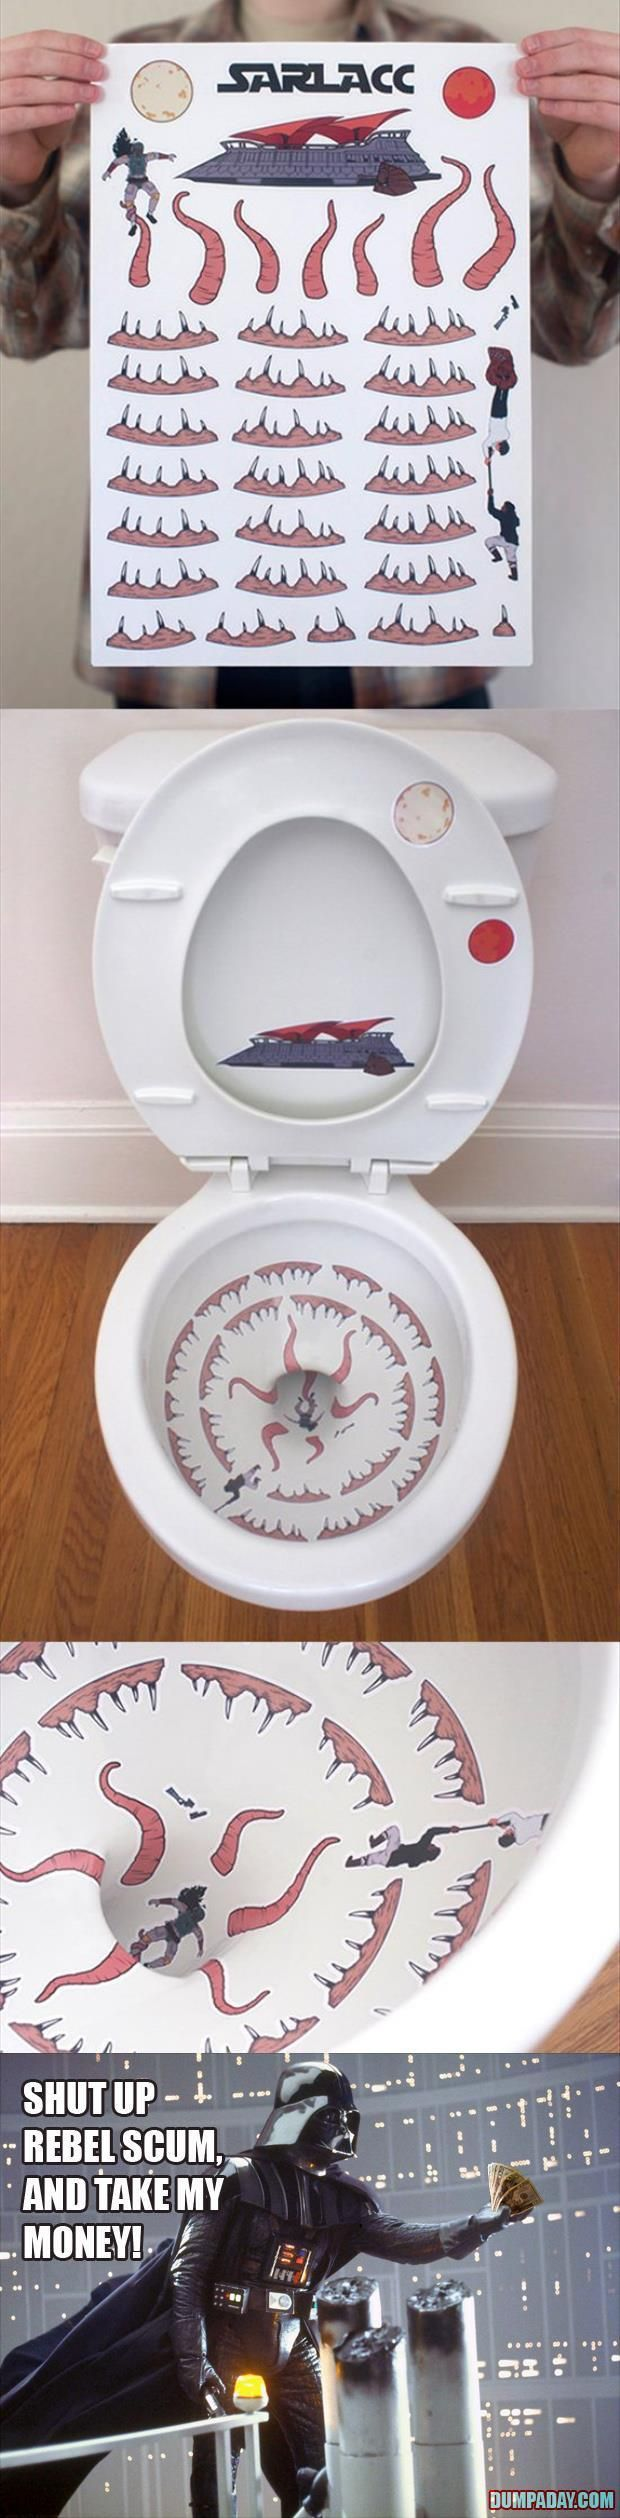 It's a Sarlacc in your toilet. This is awesome.